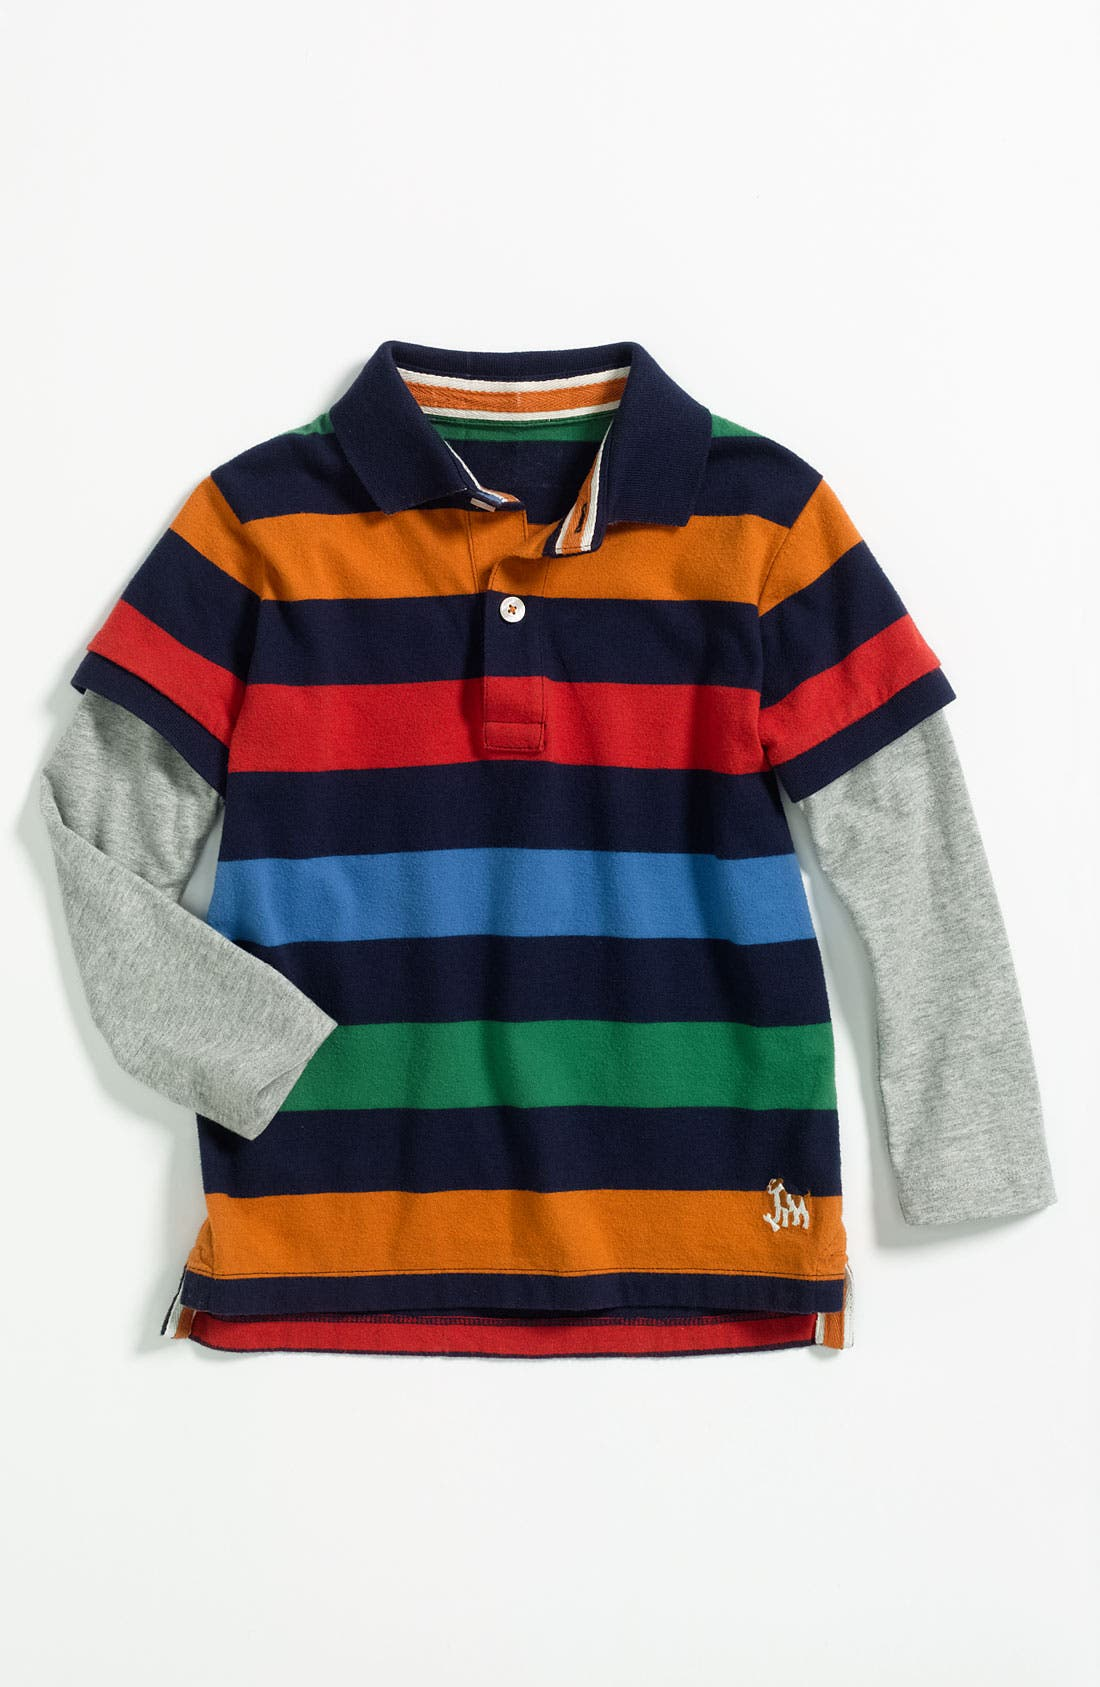 Alternate Image 1 Selected - Mini Boden Layered Sleeve Polo (Toddler)